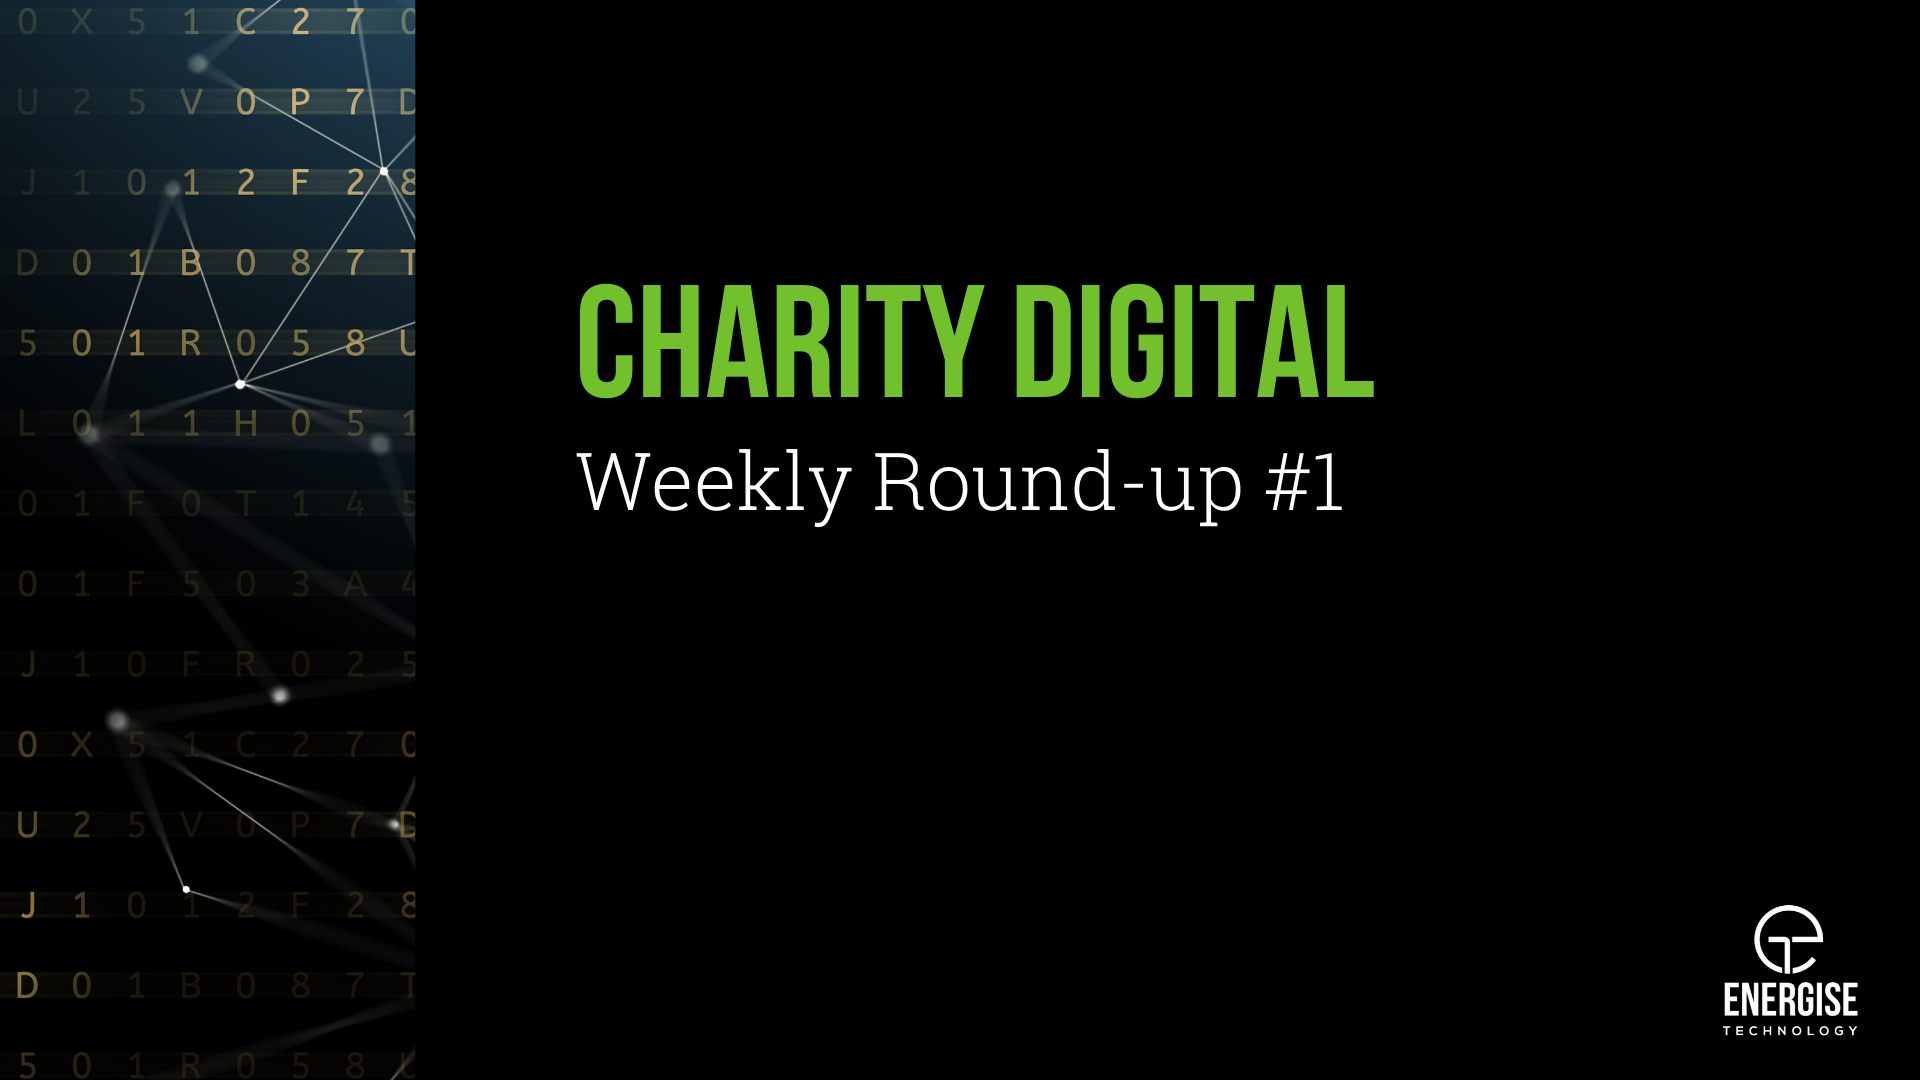 Charity Digital Weekly Roundup #1